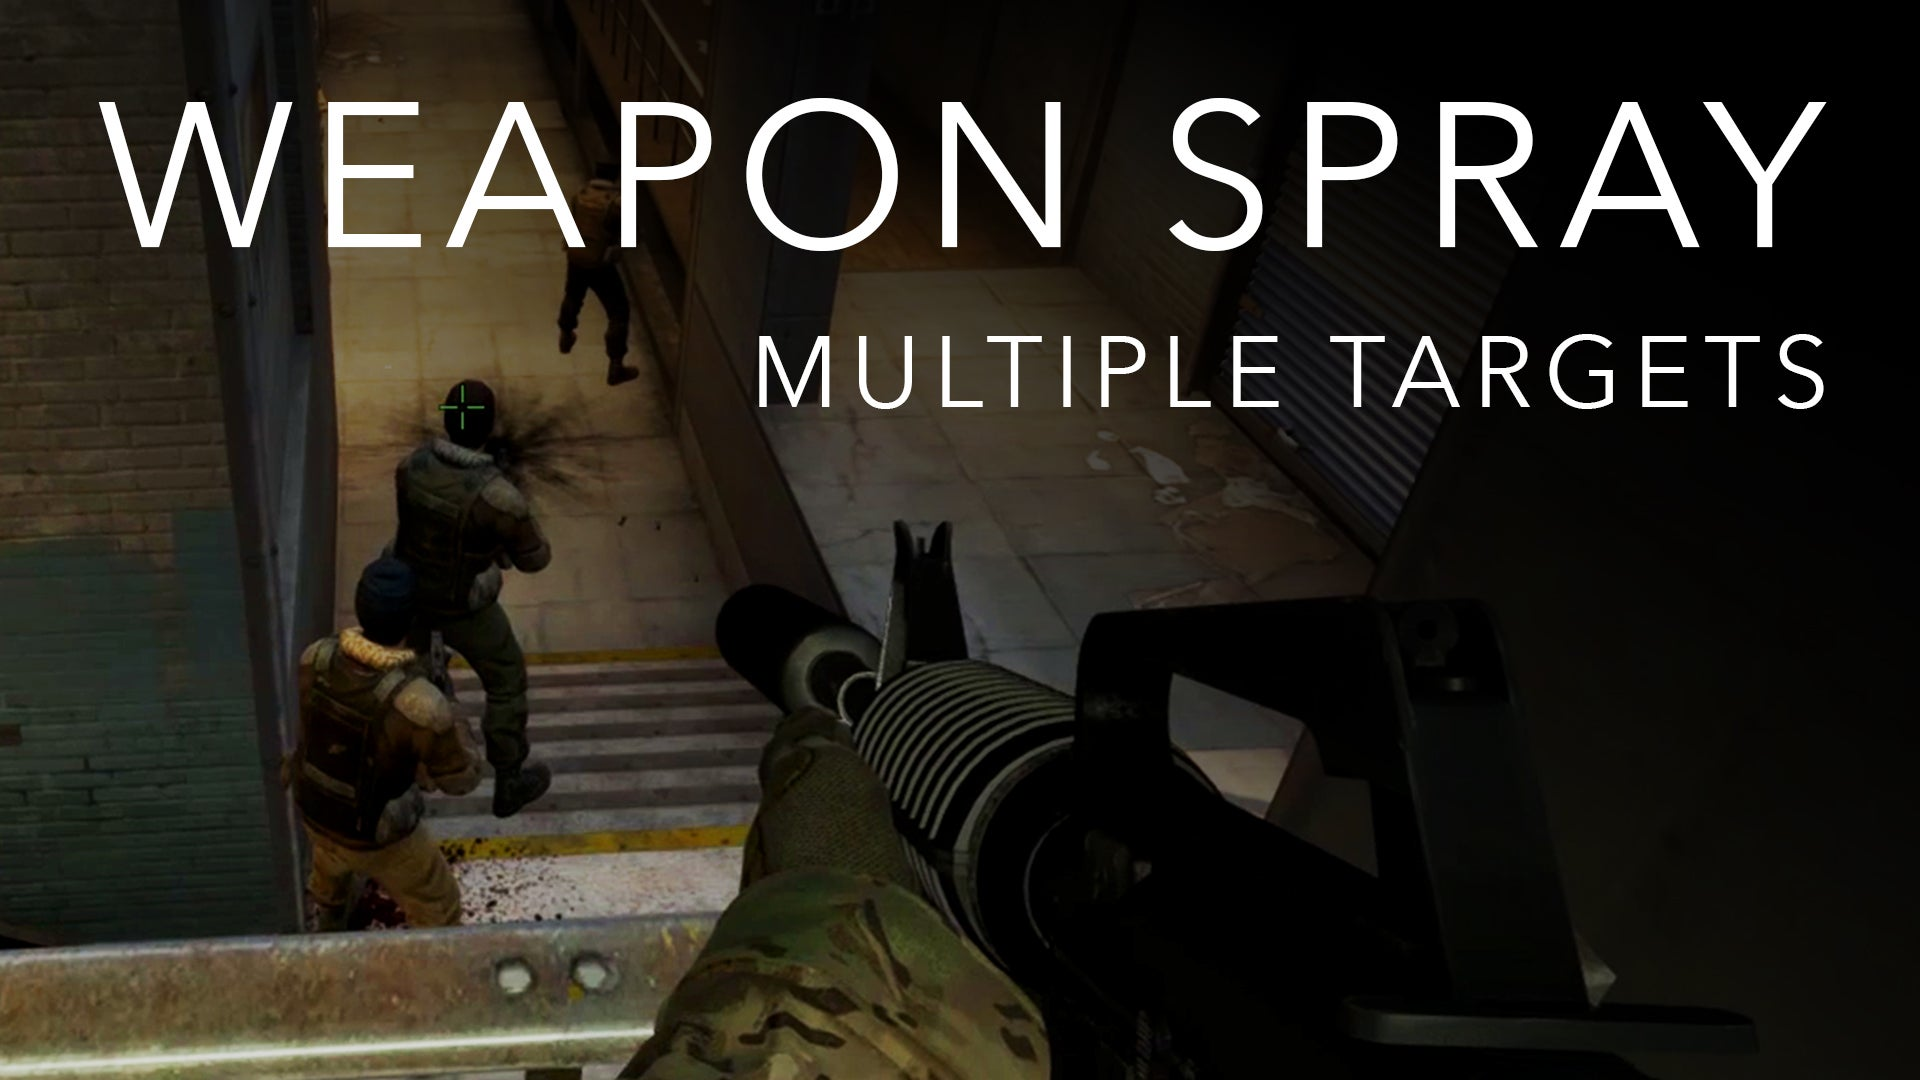 Weapon Spray Transfer for Multiple Targets